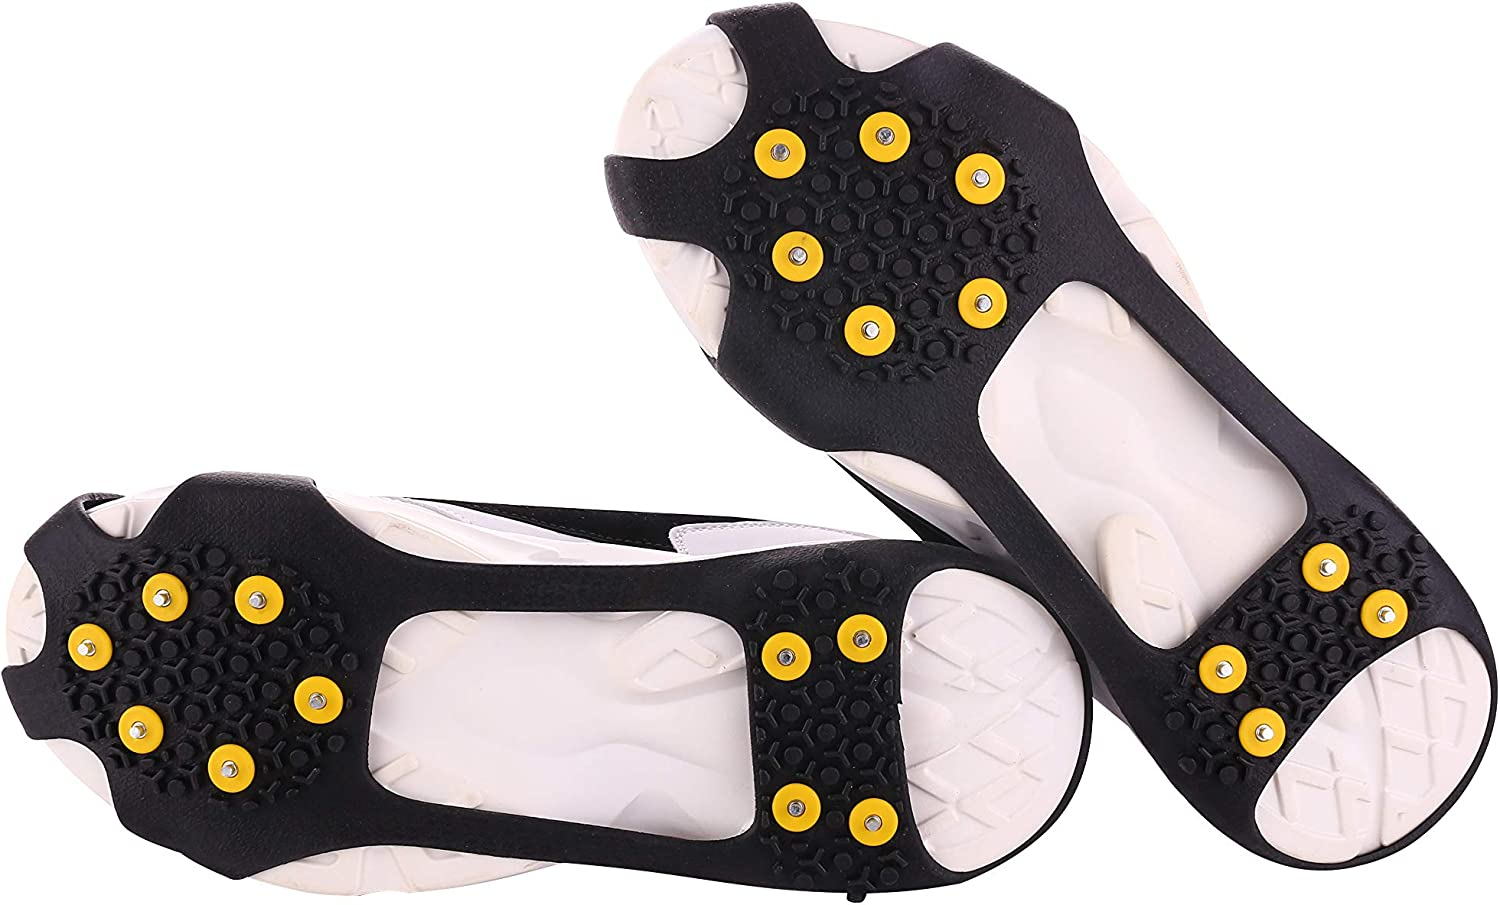 danpeng Ice Grips, Ice & Snow Grips Over Shoe Boot Traction Cleat Spikes Anti Slip 10-Tooth Crampon Non-Slip Shoe Cover